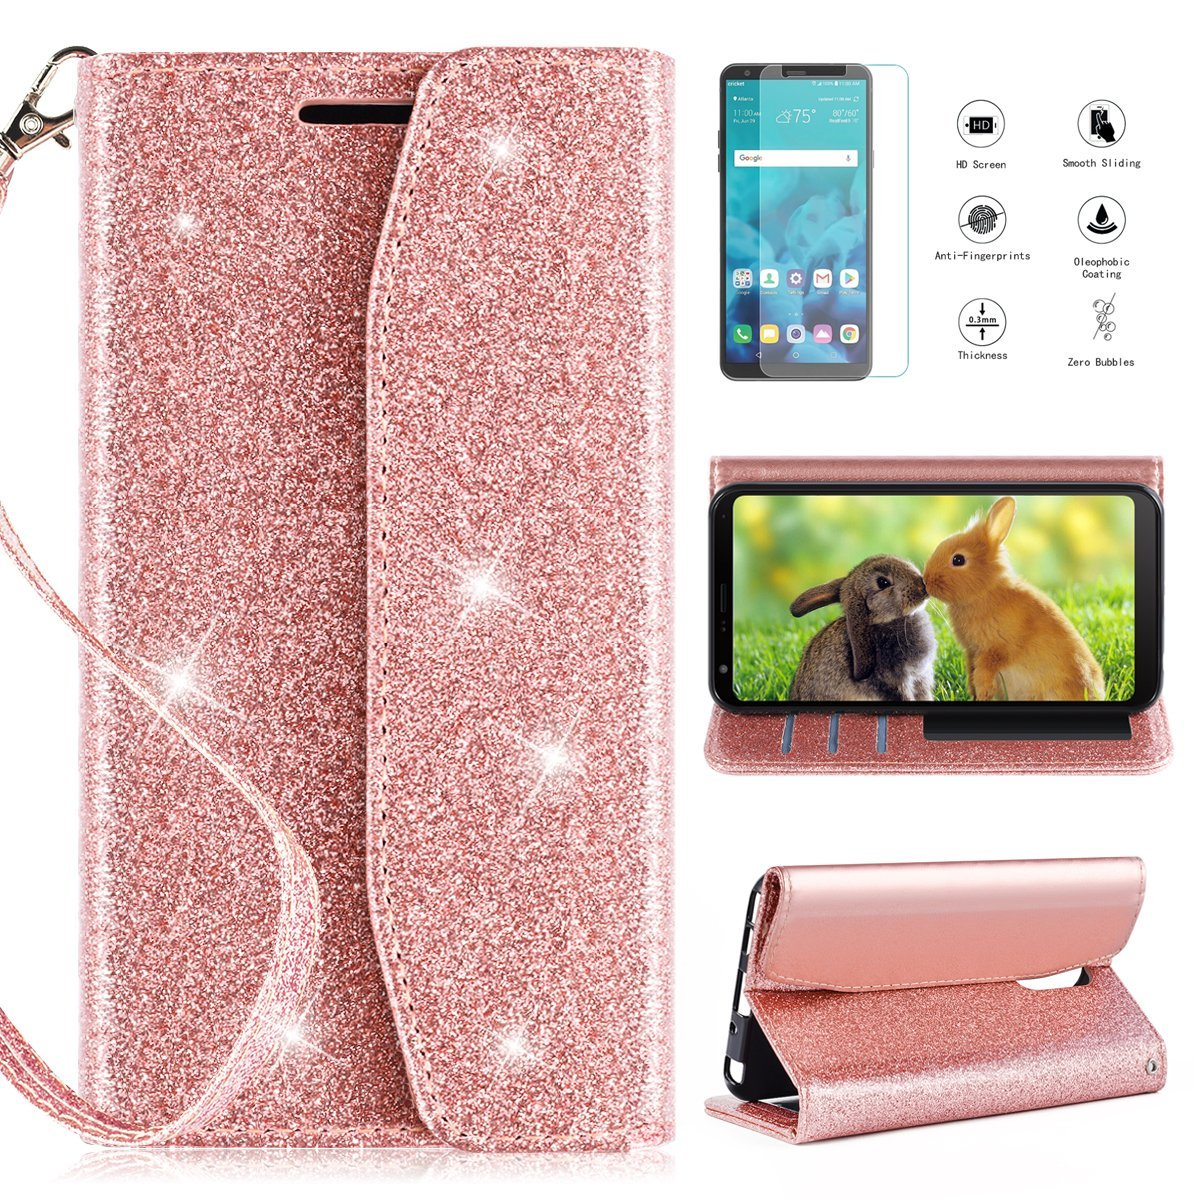 LG Stylo 4 Wallet Case 2018,LG Stylus 4 Wallet Case HD Screen Protector,CaseRoo [Kickstand] [Card Slots] [Wrist Strap] 2 in 1 Glitter Magnetic Flip PU Leather Cover Cosmetic Mirror-Rosegold